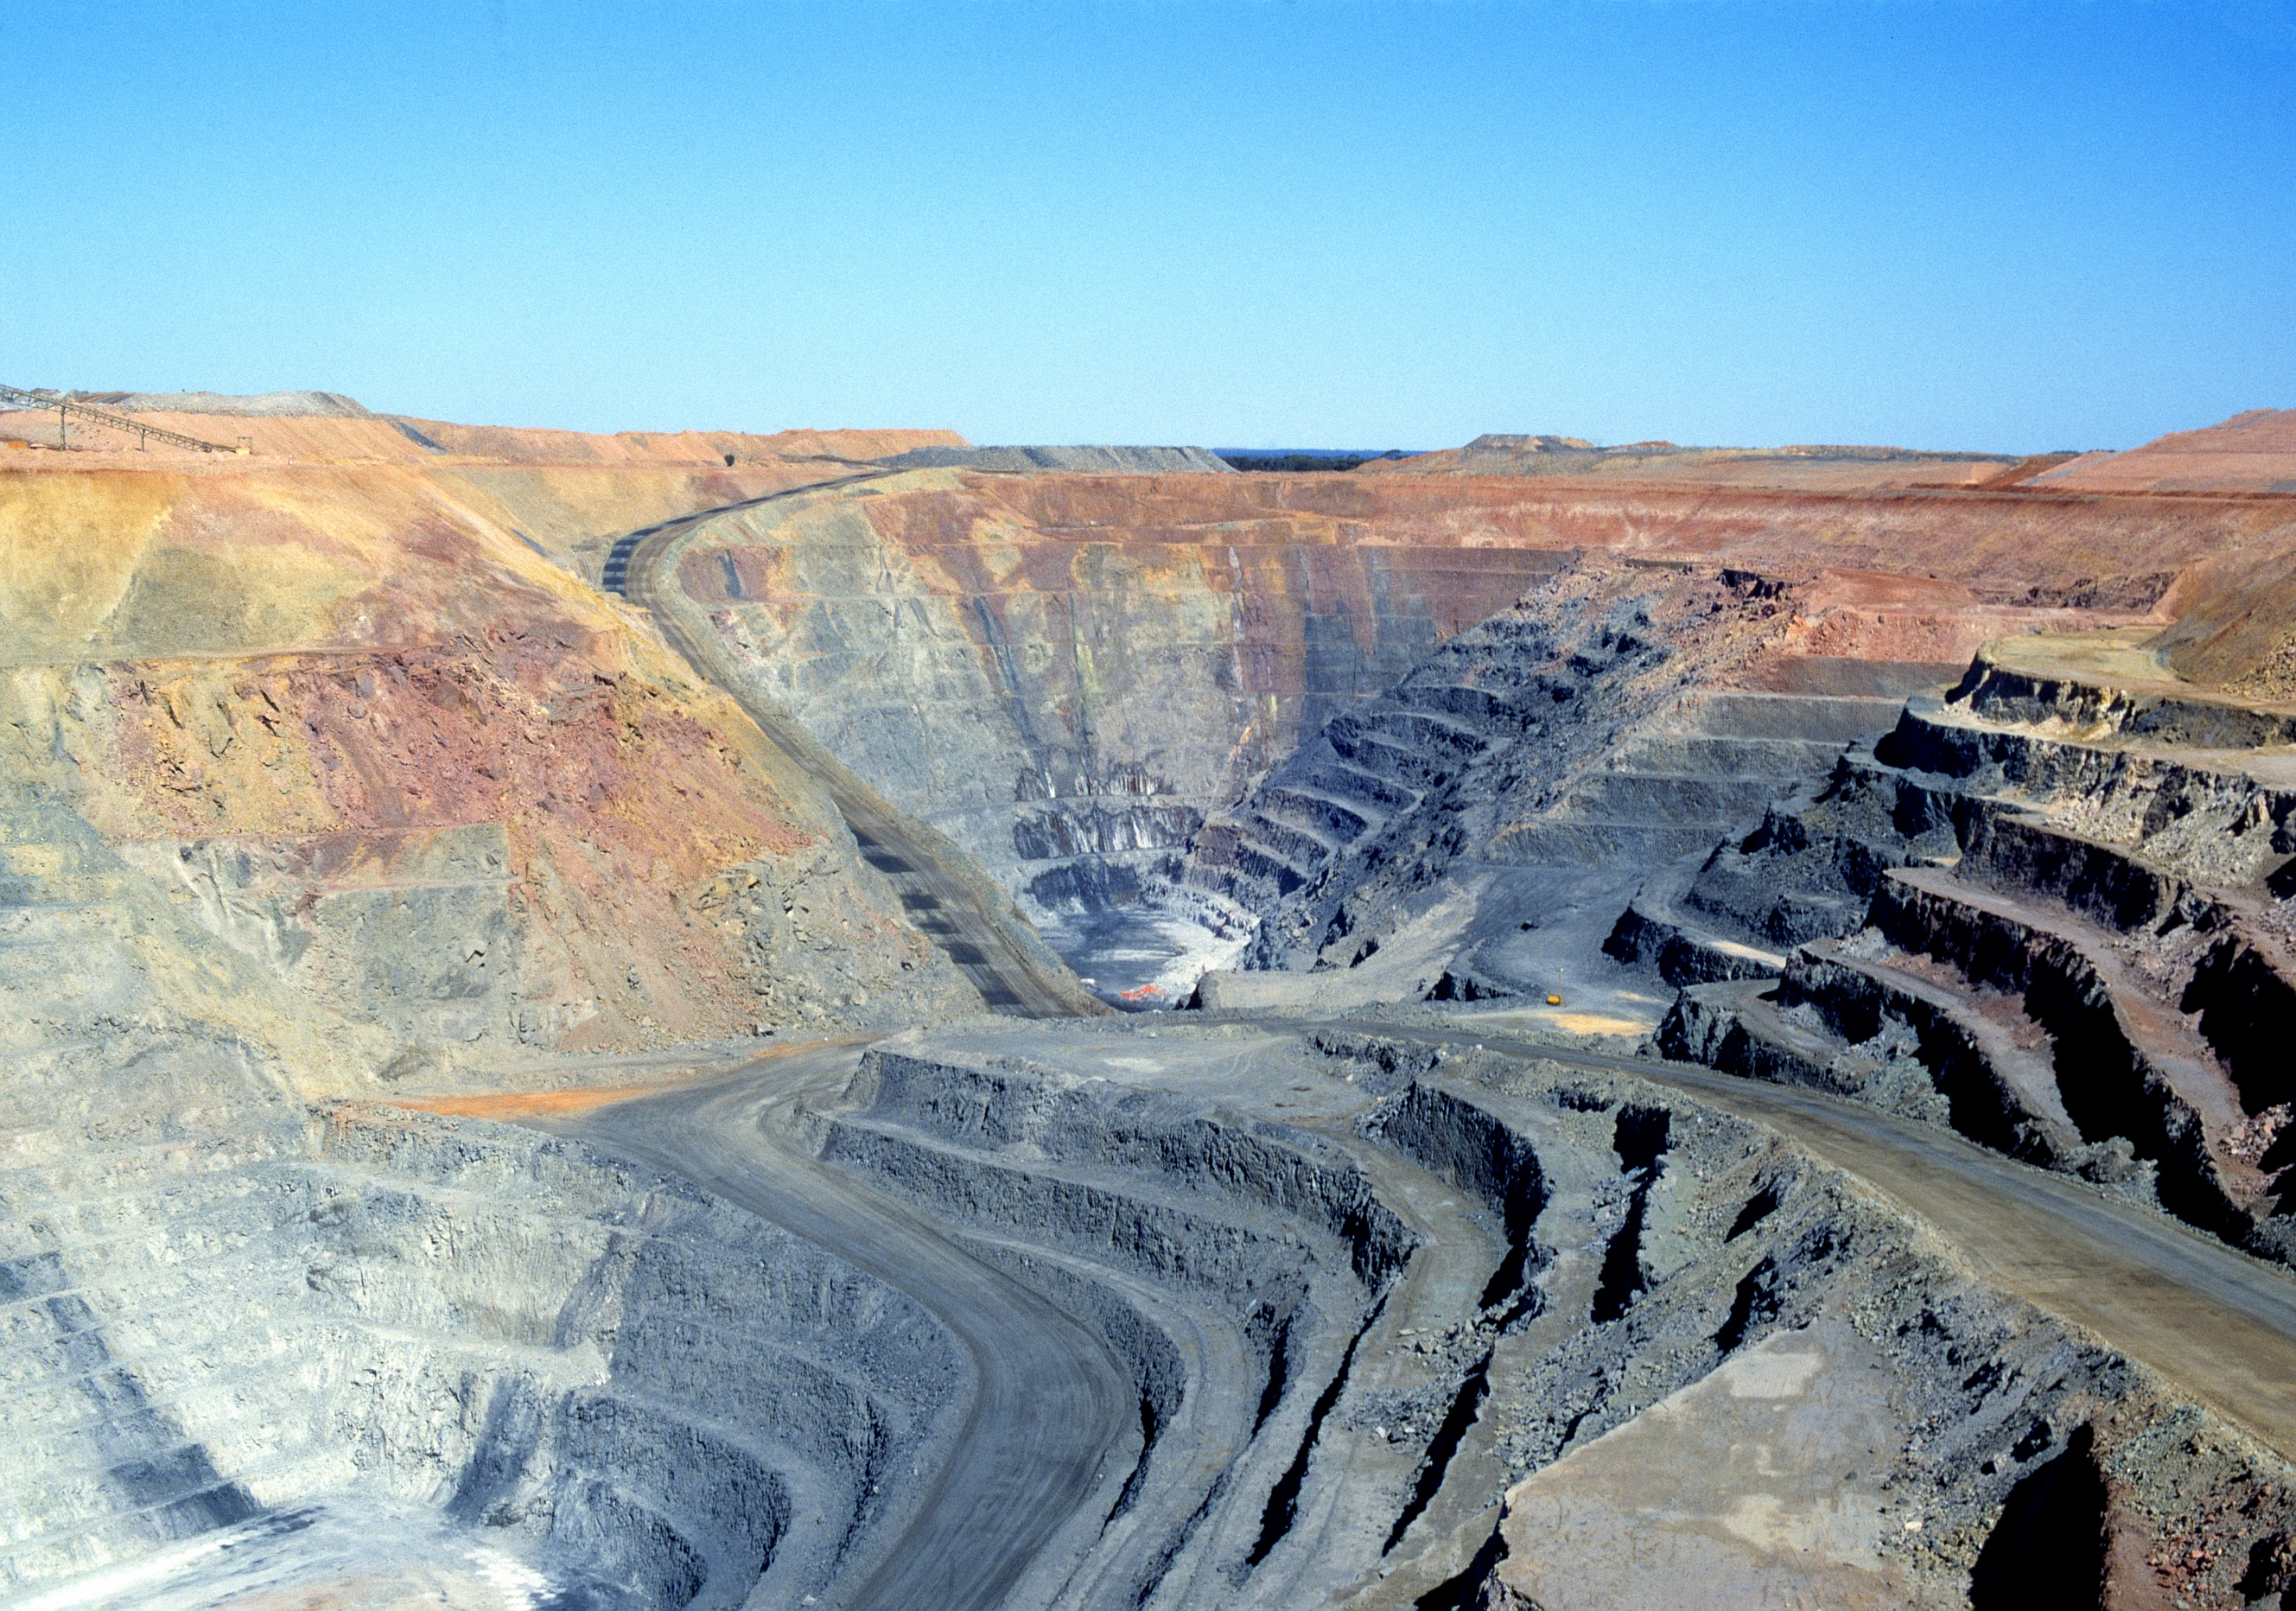 View into an open pit mine.